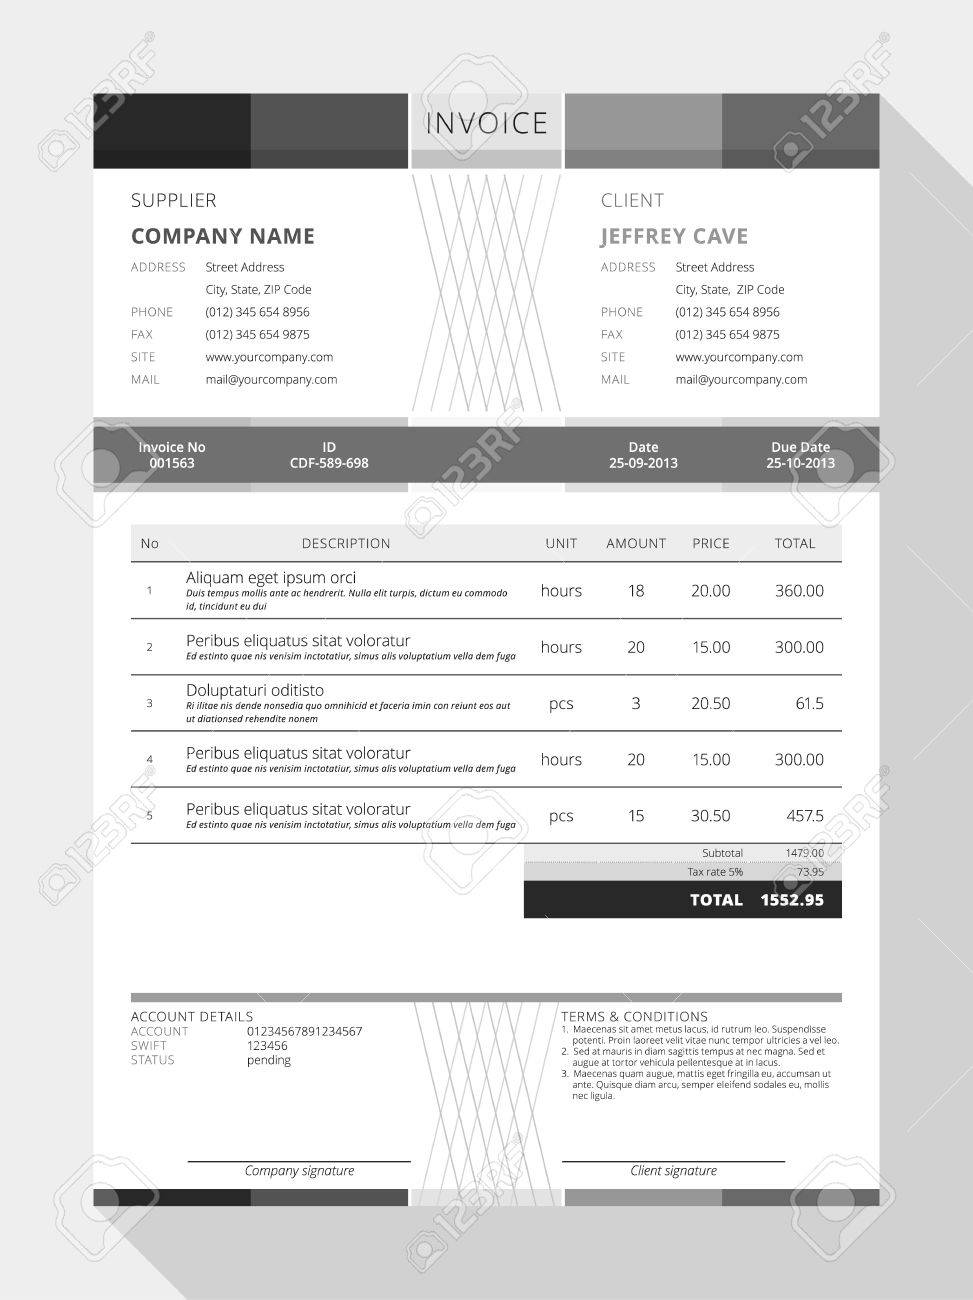 Aaaaeroincus  Seductive Design An Invoice  Professional Graphic Design Invoice  With Lovable Vector Customizable Invoice Form Template Design Vector   Design An Invoice With Comely How To Find Vehicle Invoice Price Also Express Invoice Software In Addition How Much Over Invoice Should You Pay For A Car And Mazda Cx  Dealer Invoice As Well As Example Of Invoice For Services Additionally Auto Service Invoice From Happytomco With Aaaaeroincus  Lovable Design An Invoice  Professional Graphic Design Invoice  With Comely Vector Customizable Invoice Form Template Design Vector   Design An Invoice And Seductive How To Find Vehicle Invoice Price Also Express Invoice Software In Addition How Much Over Invoice Should You Pay For A Car From Happytomco